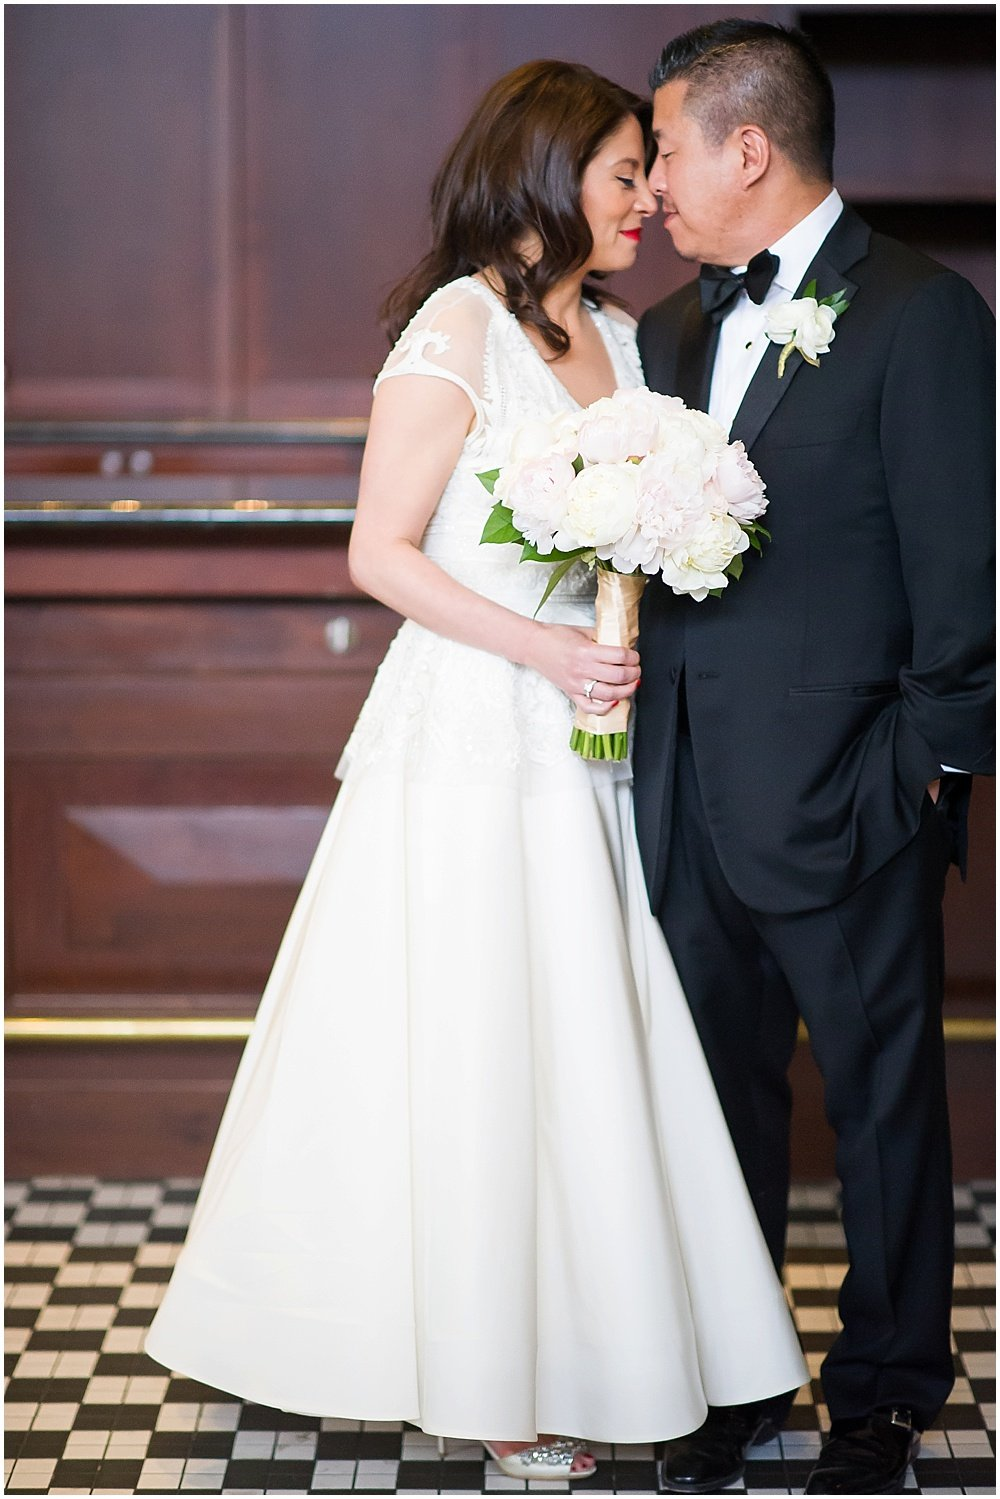 Forehead boop of bride and groom at claremont hotel wedding by Chloe Jackman Photography